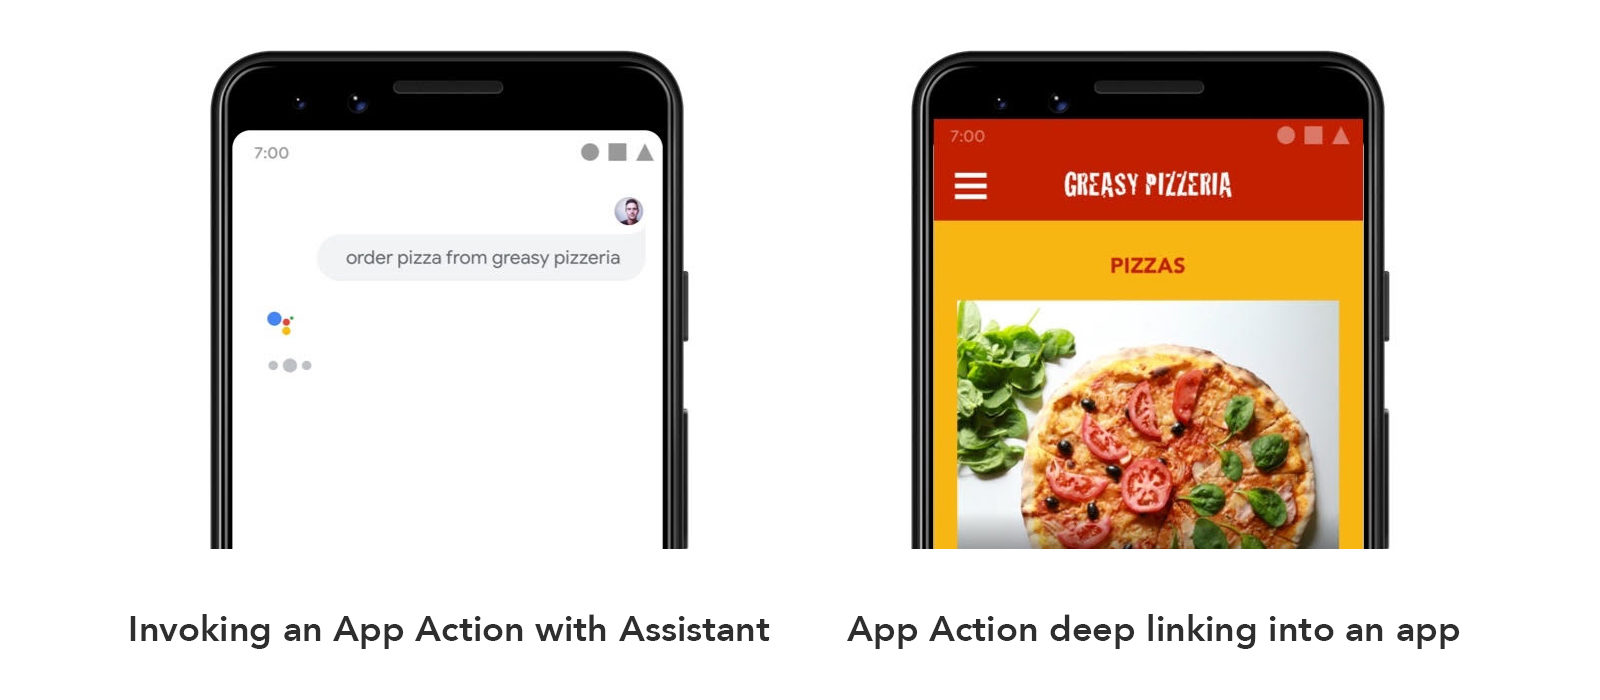 examples on android of interacting with Google Assistant to access an App Action and how the next step would appear after deep linking into a mobile app